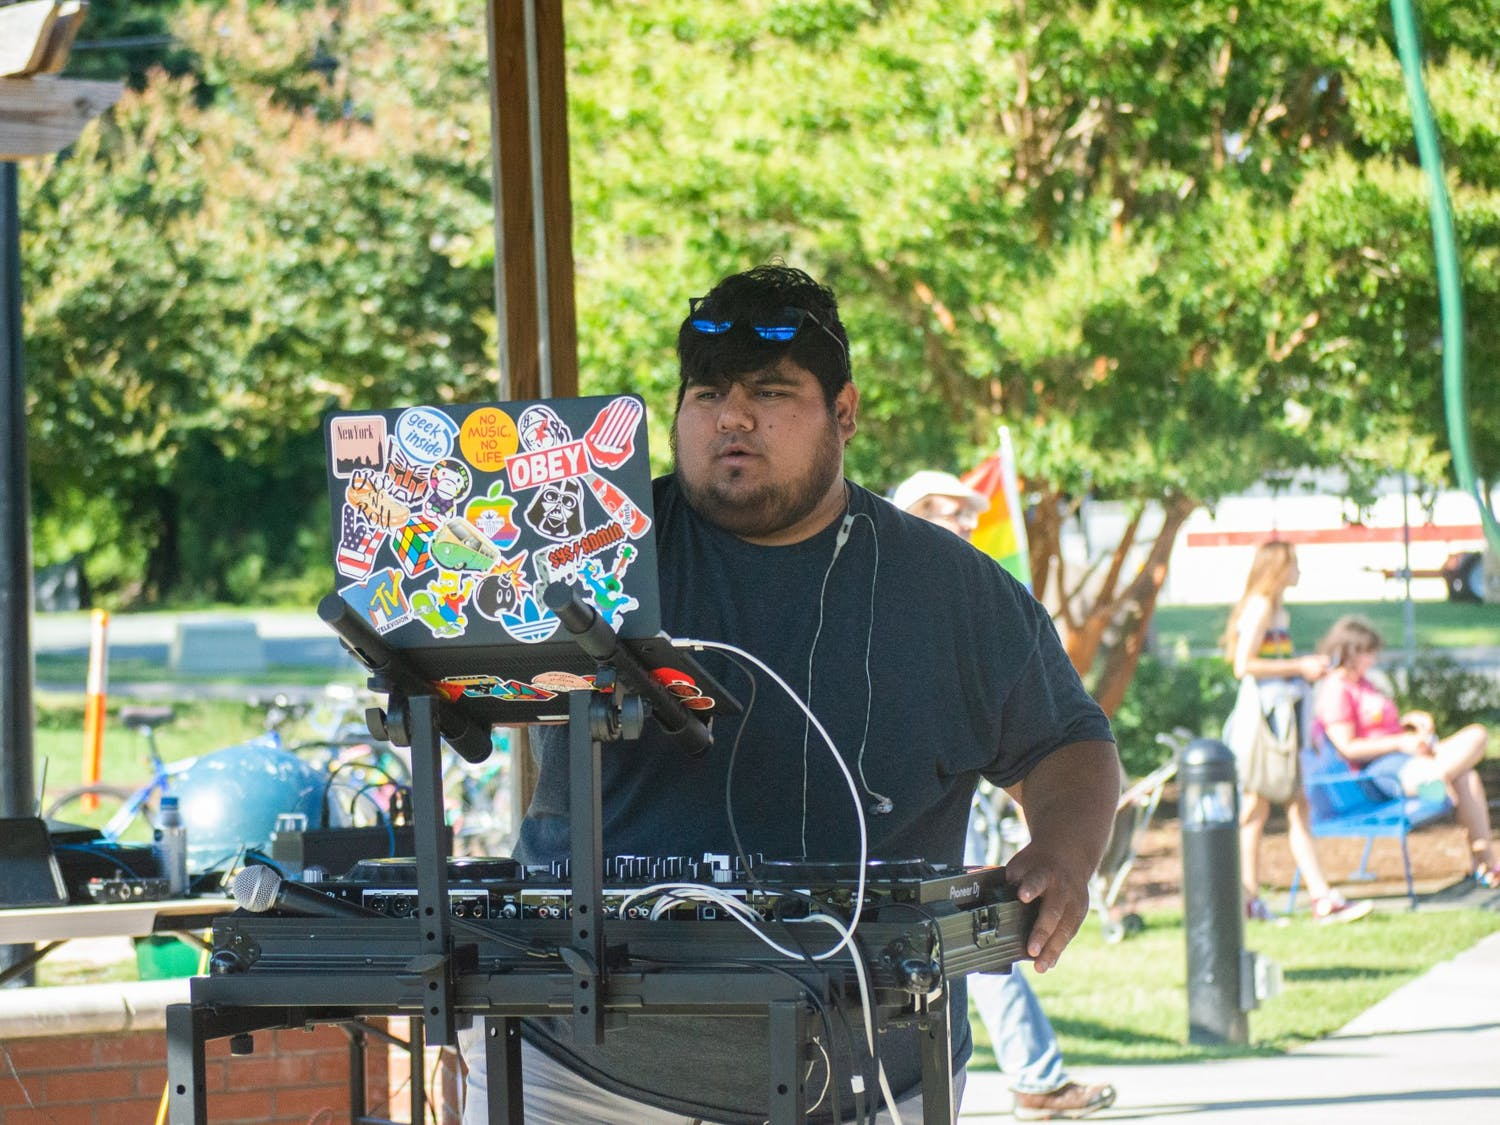 Dj OT King performs at the Chapel Hill Carrboro Small Town Pride Food Truck Rodeo and Dance Party in Carrboro on Thursday June 24, 2021.